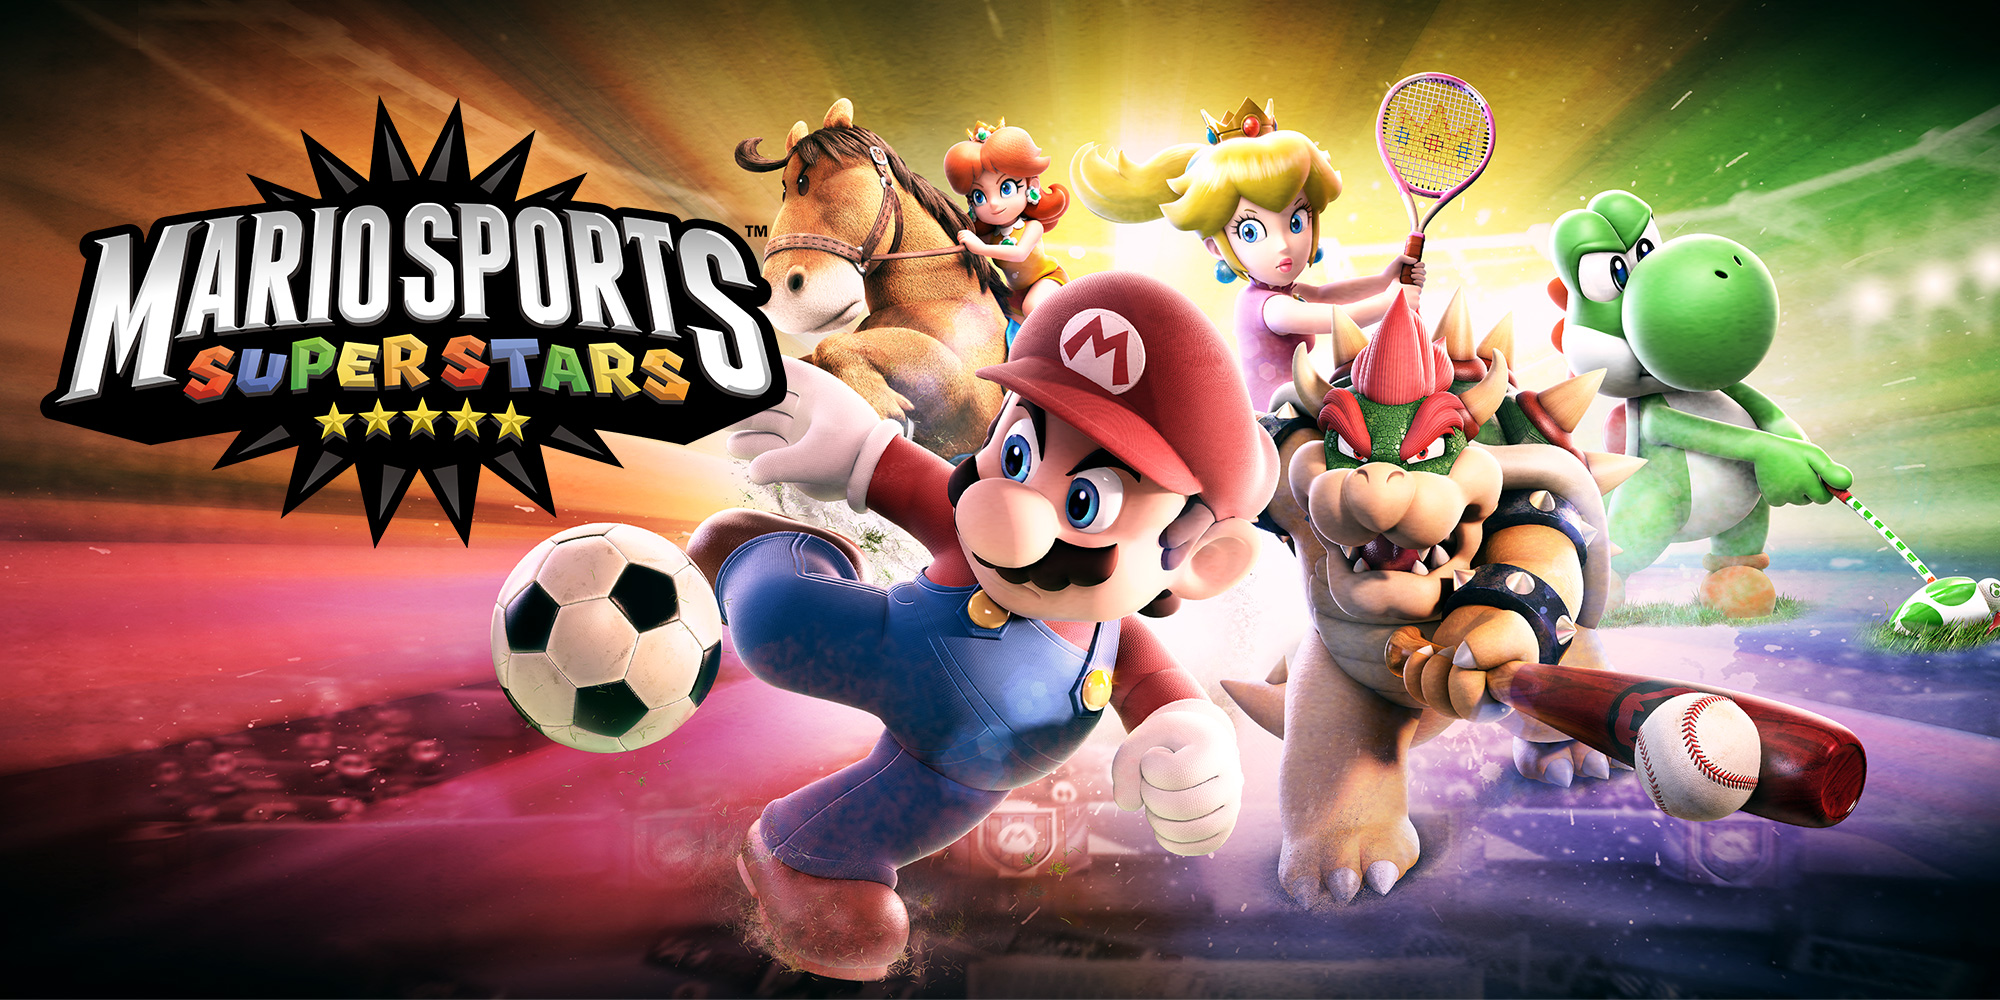 Begin your journey to superstardom at the Mario Sports Superstars website!